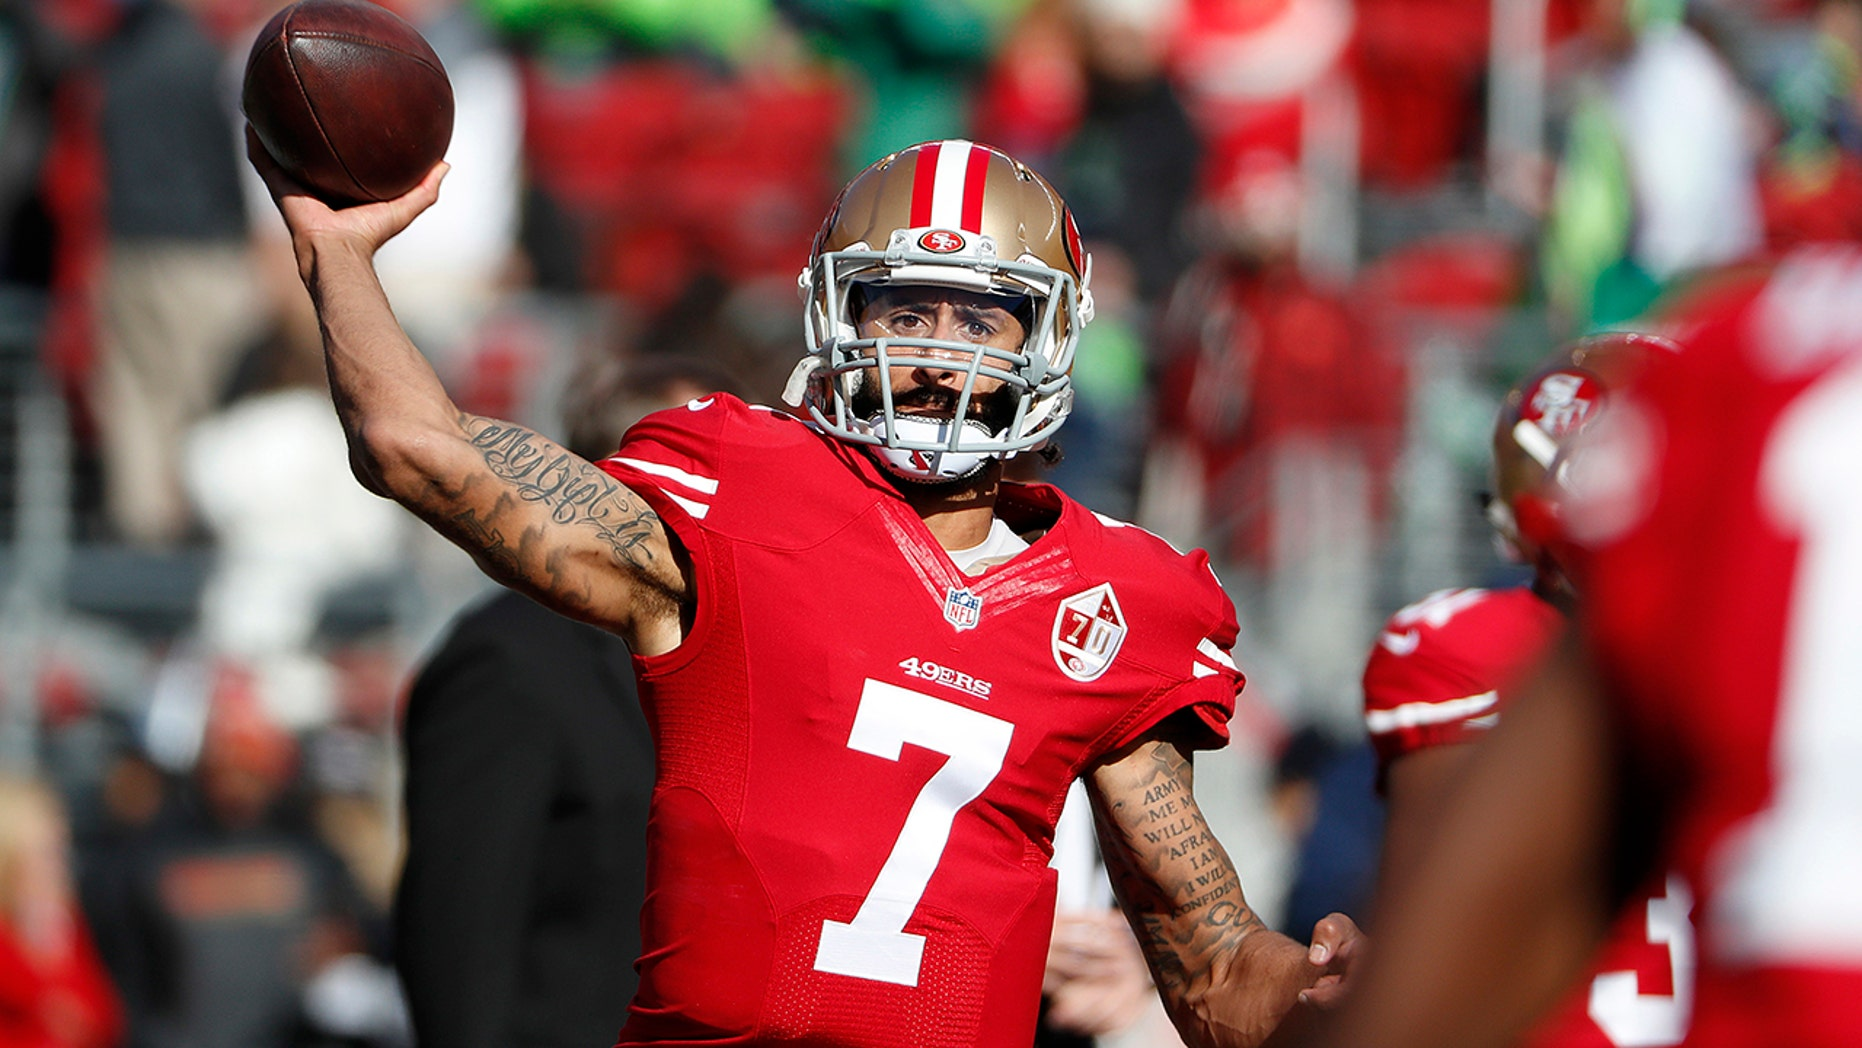 6b6f3a17bc6 Kaepernick would reportedly sign with any NFL team -- even the Redskins